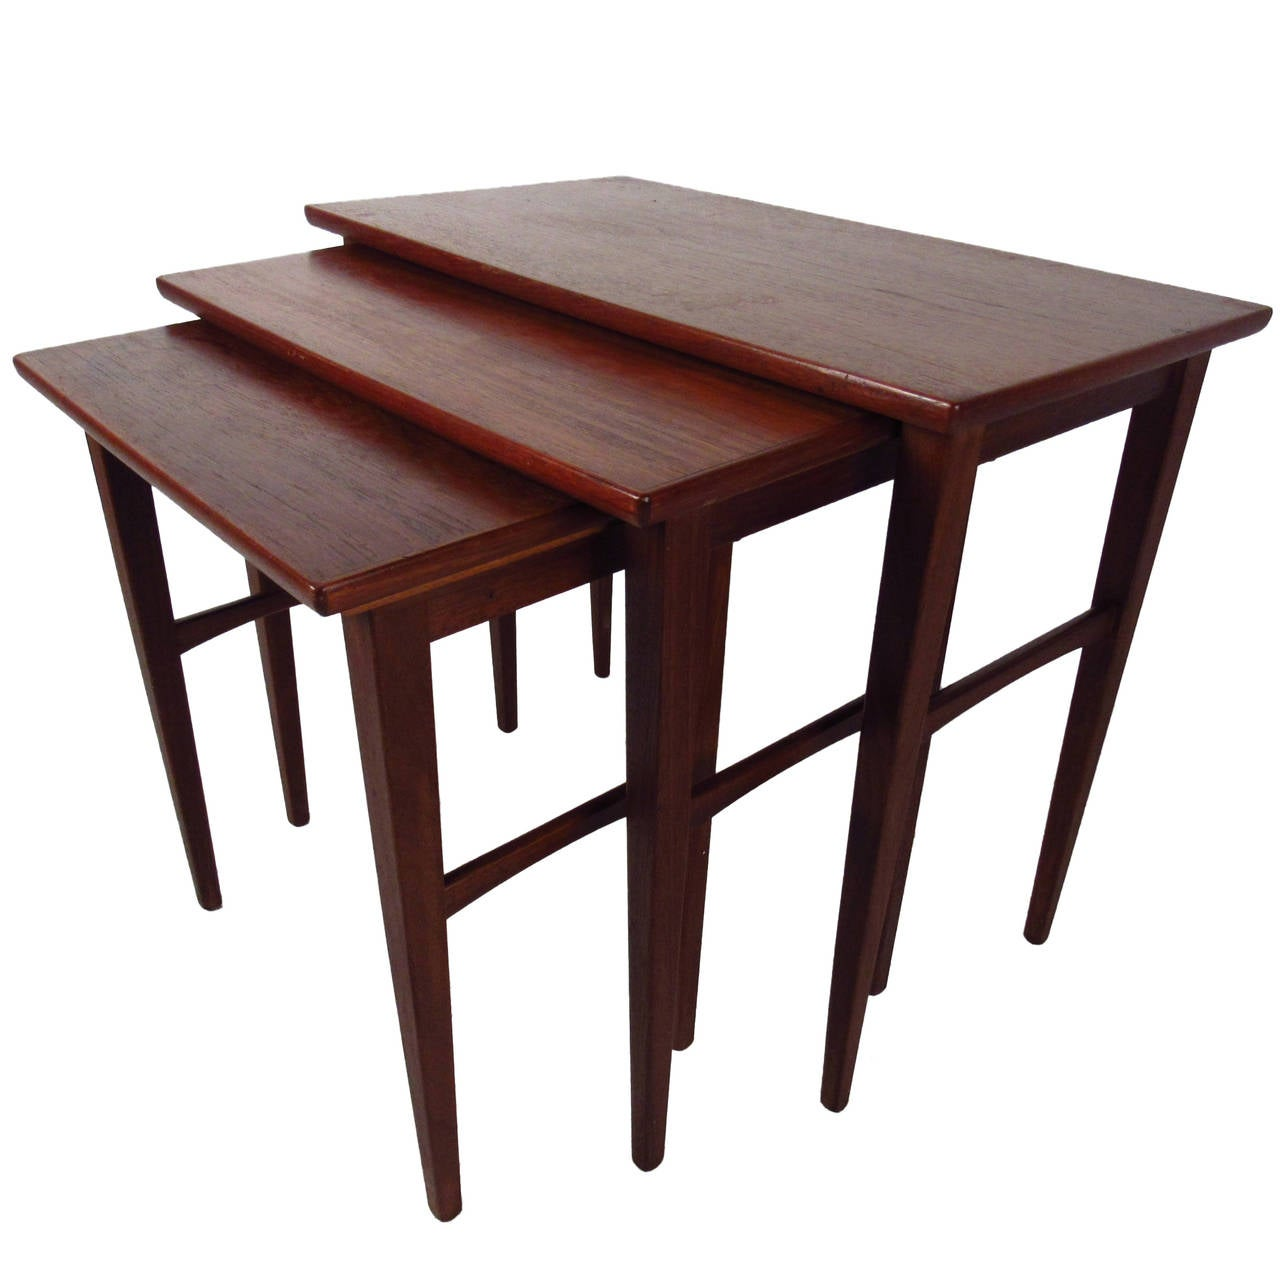 Teak Nesting Tables ~ Scandinavian teak nesting tables at stdibs